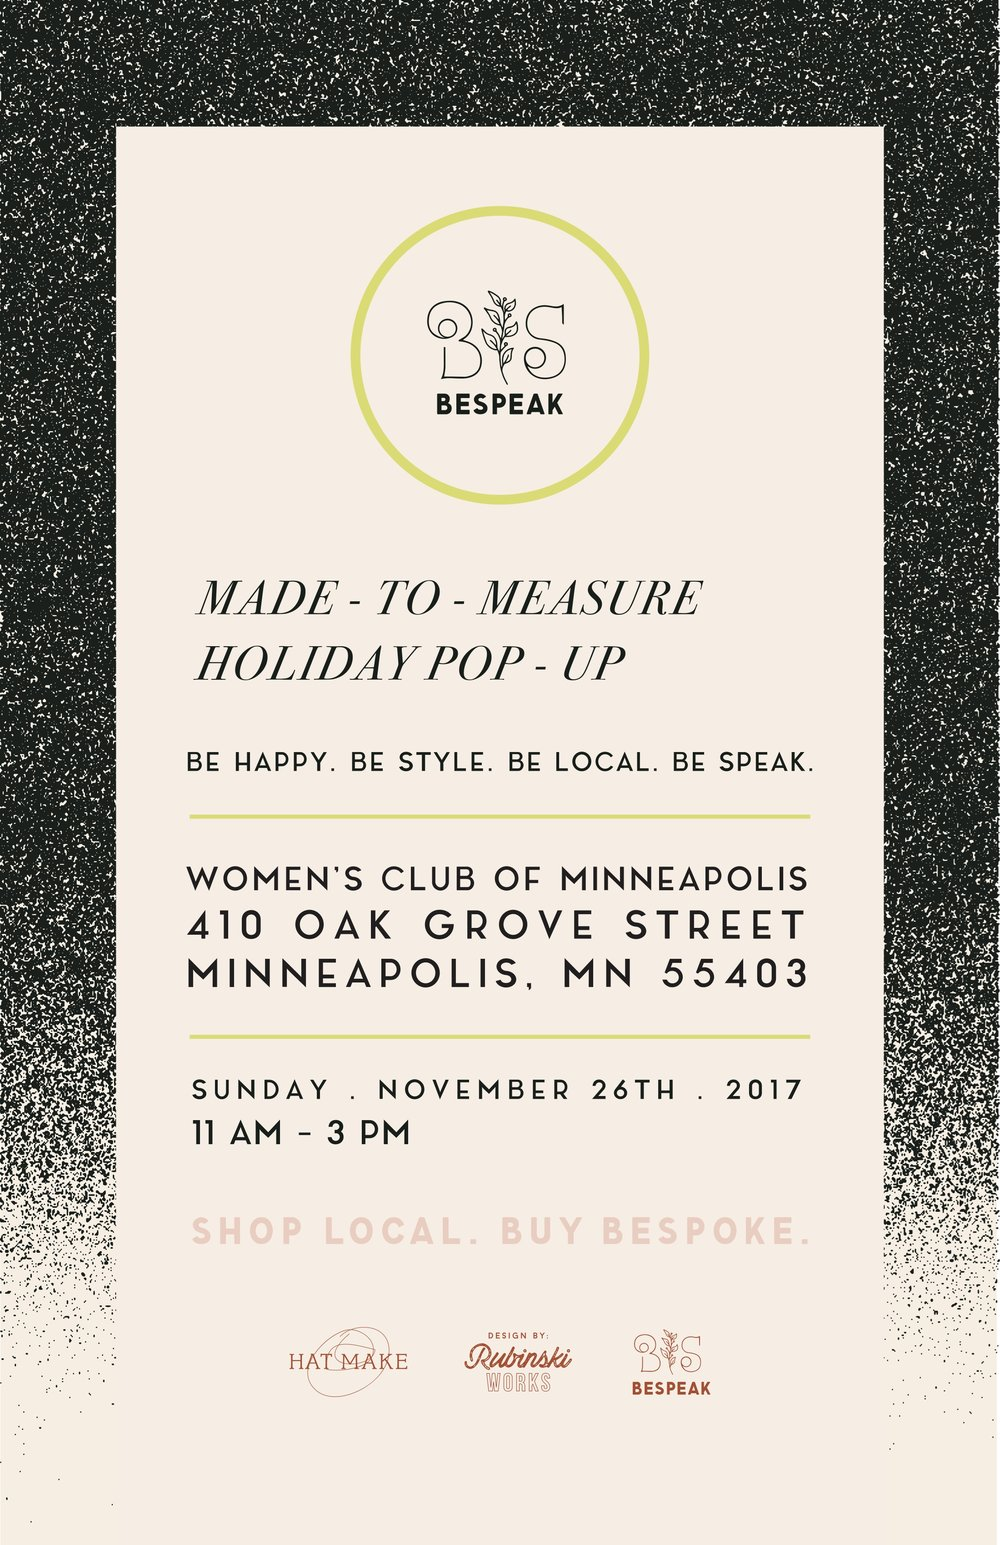 Milliner Celina Kane, founder of HAT MAKE, is hosting the second annual BESPEAK, a Made-to-Measure pre-holiday sale with a focus on made-to-measure goods by a dozen local women artists and makers.   The event will be held on Sunday, November 26 from 11 a.m. to 3 p.m. at The Woman's Club of Minneapolis located at 410 Oak Grove Street.   BESPEAK is free and open to the public.  The vendors include designers of bespoke women's apparel, hats, leather goods, shoes, handbags, jewelry, paper, apothecary, chocolate and home accessories.  BESPEAK is dedicated to supporting women entrepreneurs and building a stronger city by bringing together diverse female artists and connecting with the community. The event will offer shoppers an array of unique, handcrafted items perfect for holiday gift-giving.  Our incredible vendors include:   Elixery Fair Anita Birchberry  HAT MAKE House of Gina Marie Hemlocks Leather Indigo & Snow Julia Elise  Kul Chocolate KNZ Rubinski Works Sassy Knitwear Wild Birds Flying